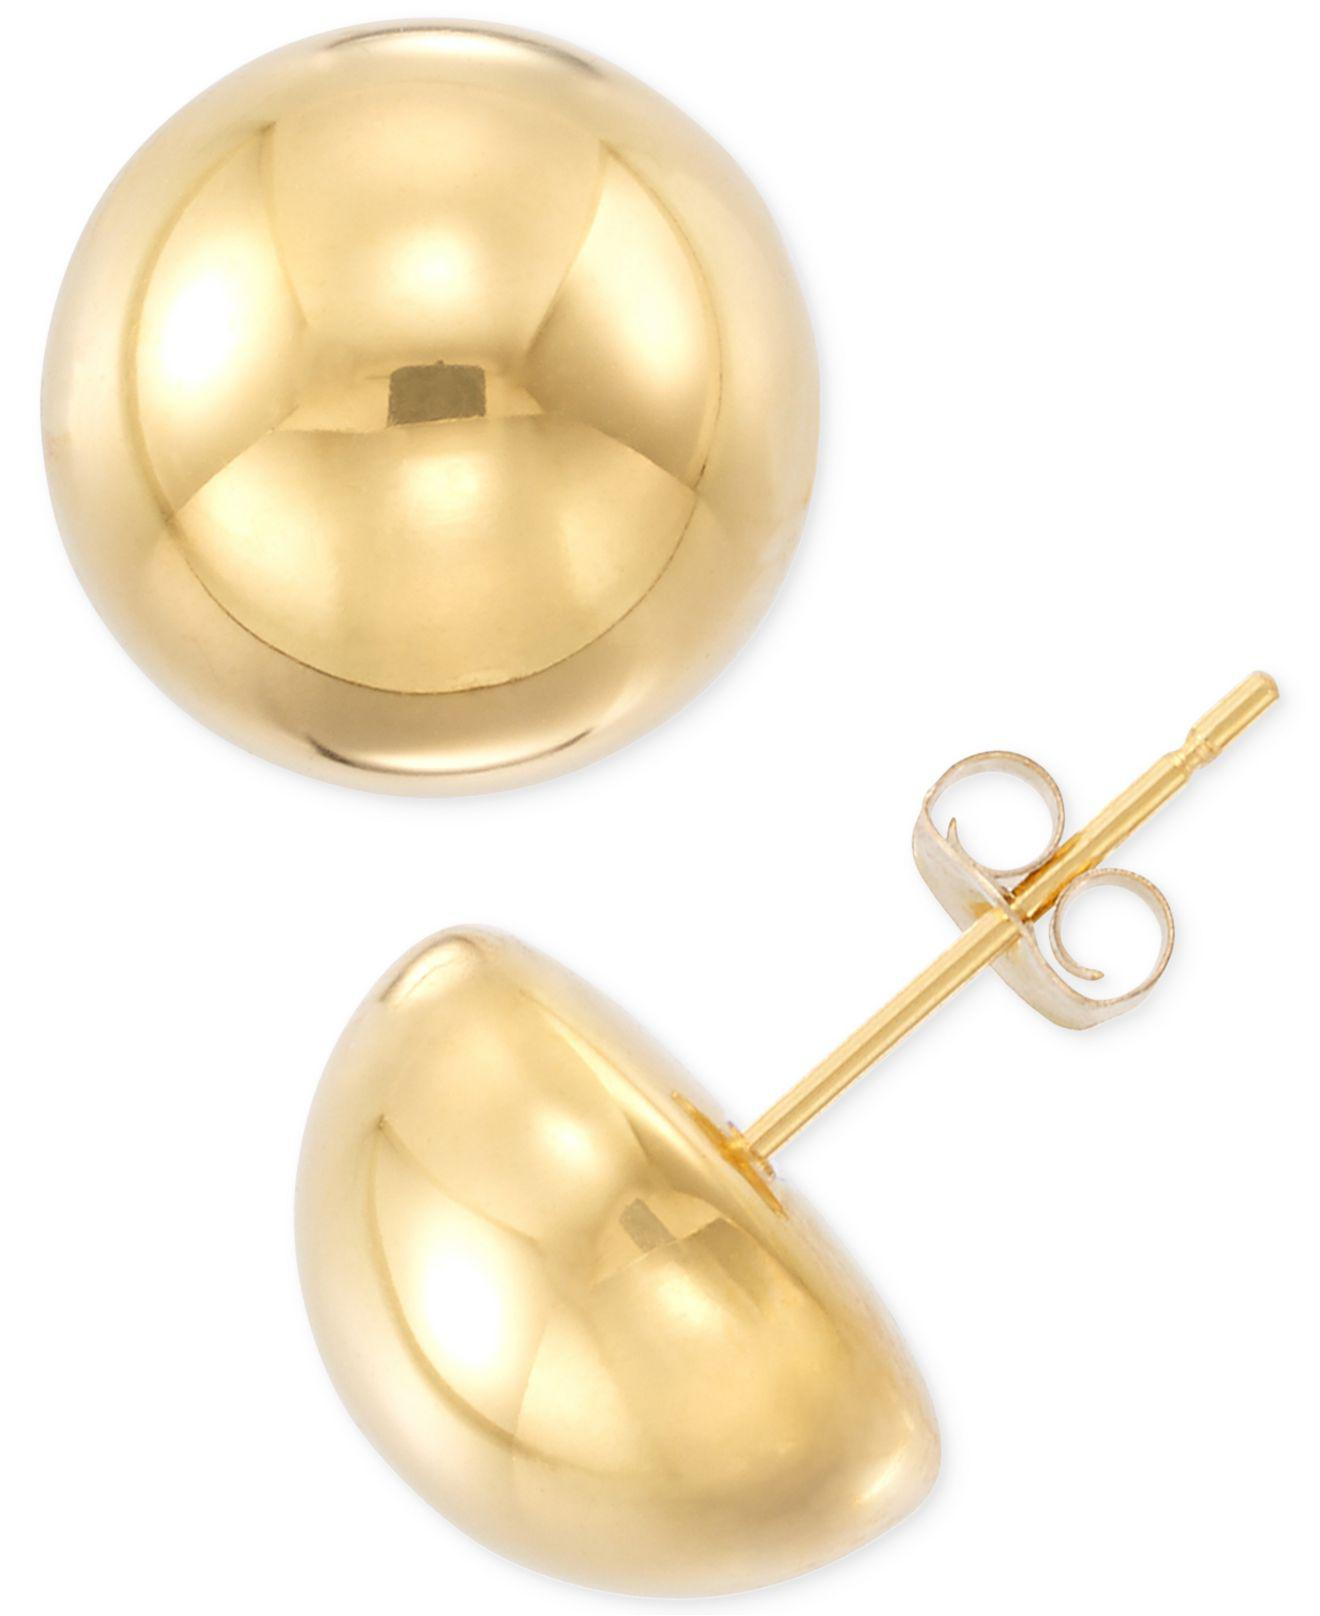 Lyst Signature Gold Half Sphere Stud Earrings In 14k Gold Or White